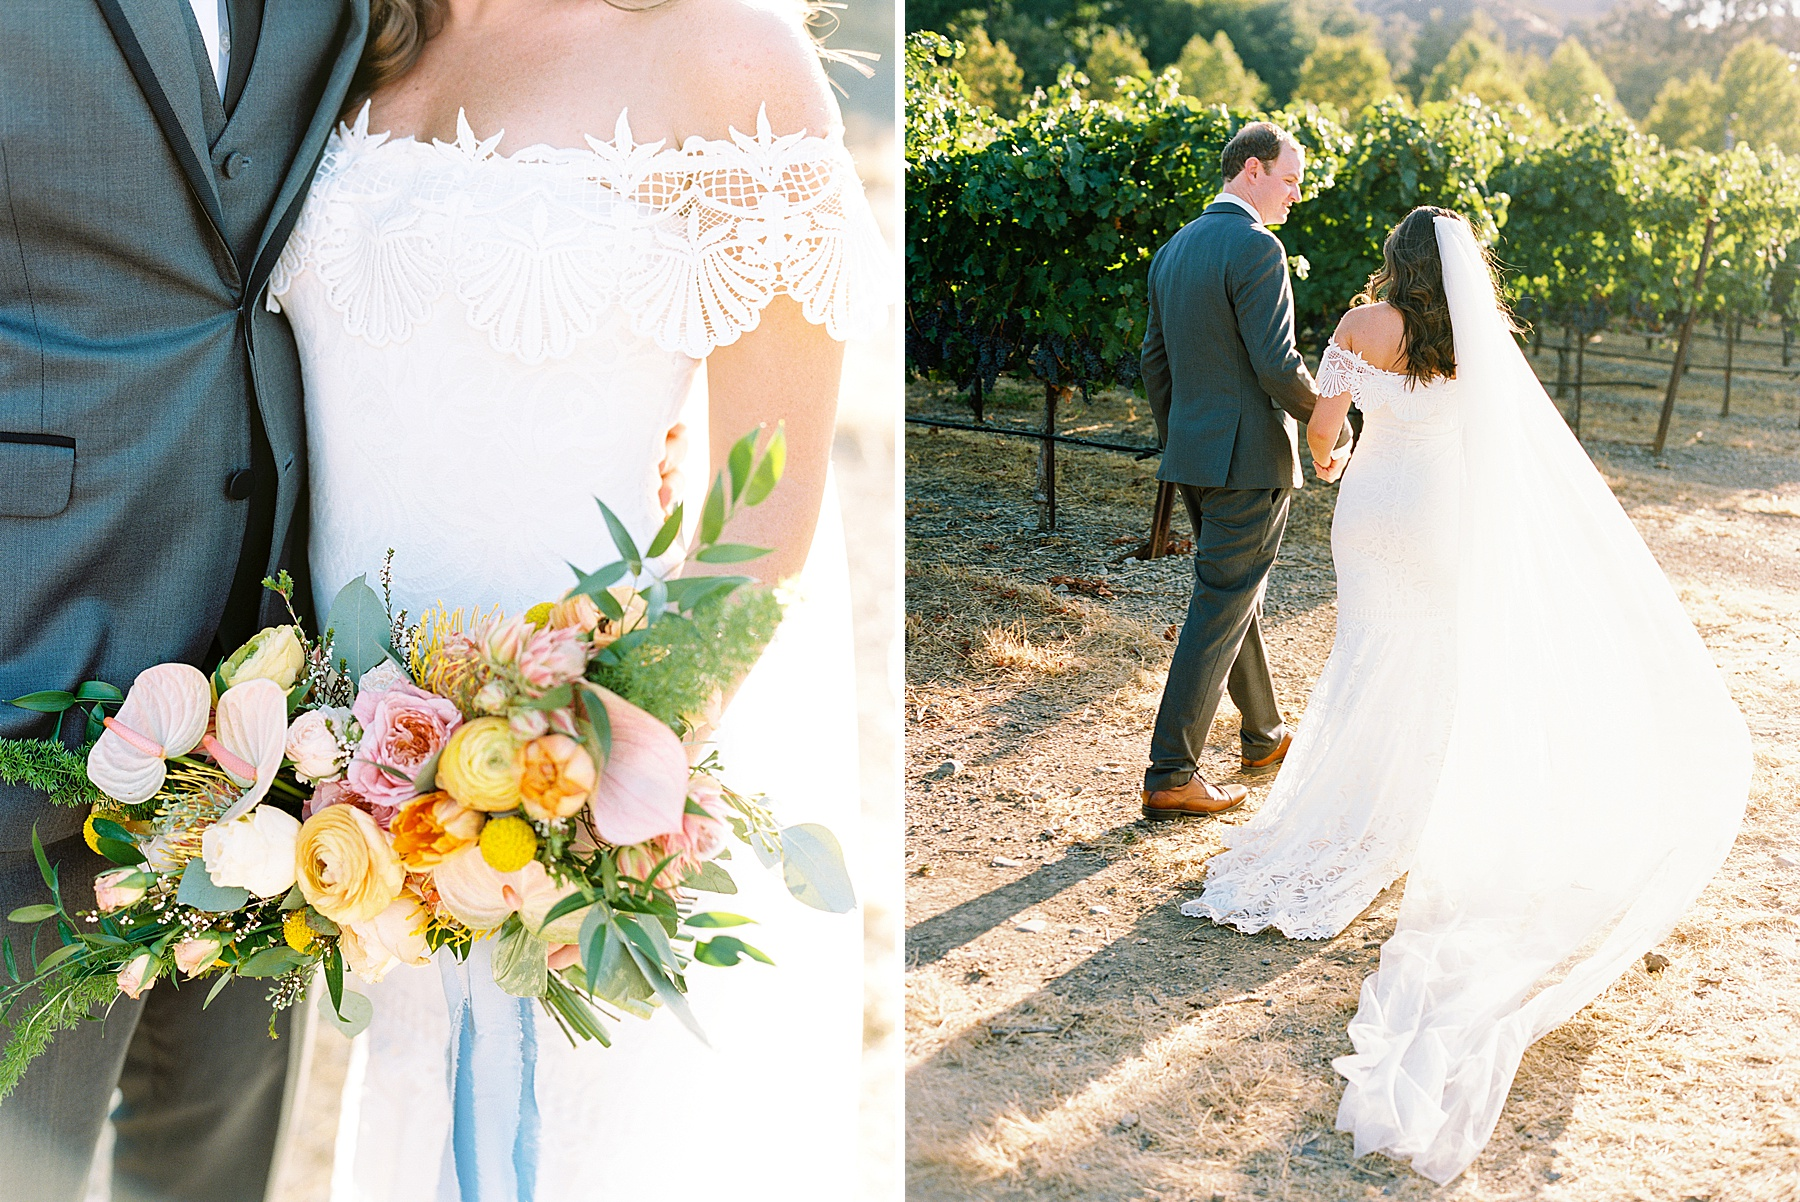 Wente Wedding with A Tropical Color Palette - Ashley & Mike - Featured on Inspired by This - Ashley Baumgartner_0049.jpg